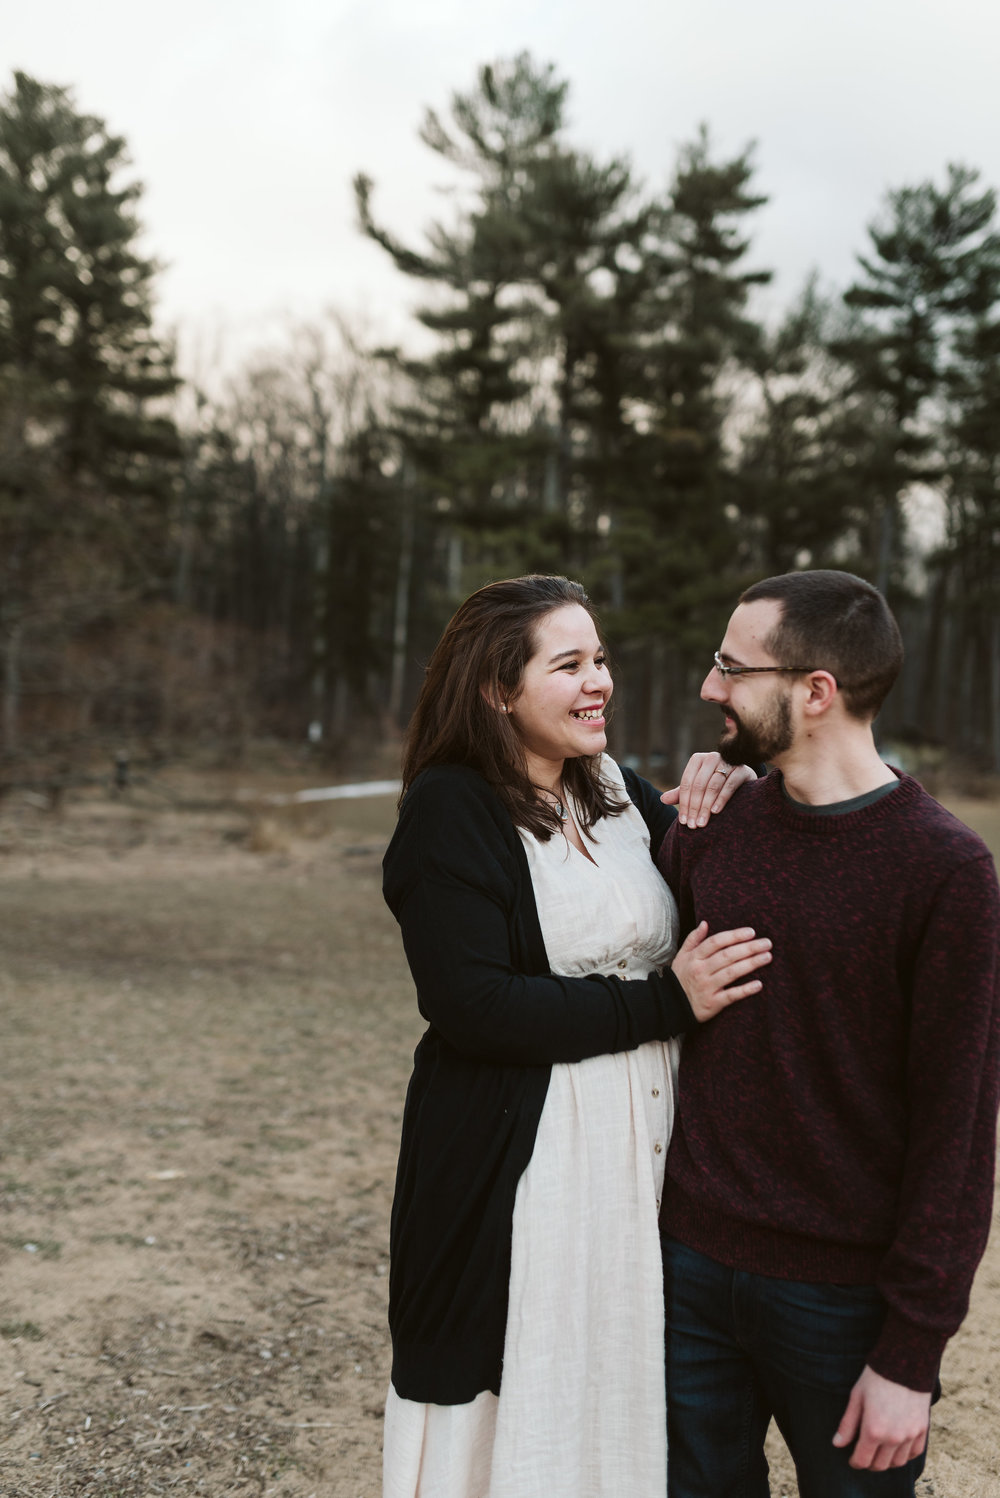 Baltimore County, Loch Raven Reservoir, Maryland Wedding Photographer, Winter, Engagement Photos, Nature, Romantic, Clean and Classic, Couple Laughing Together in the Forest